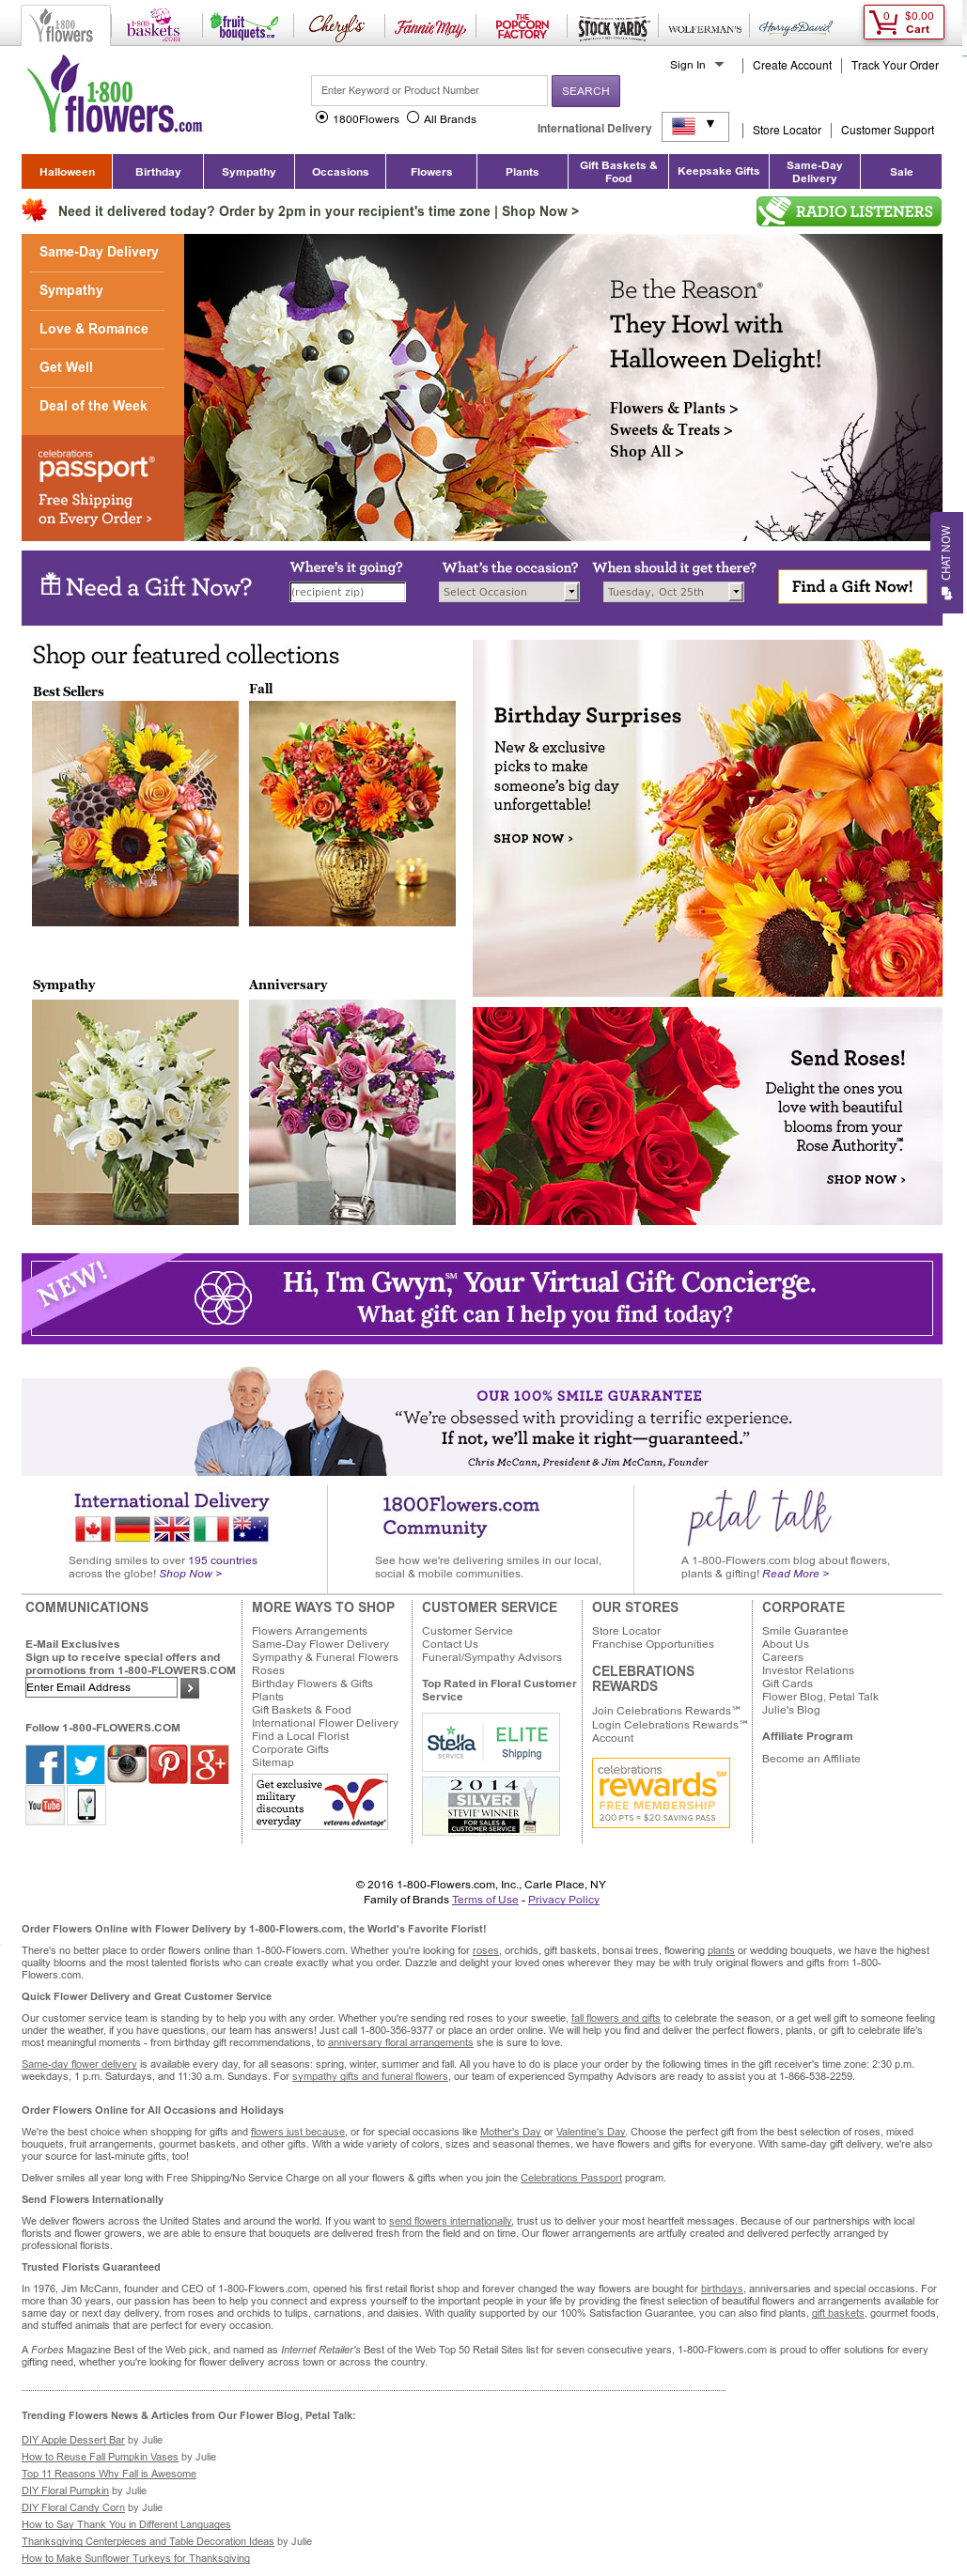 1-800- Flowers Competitors, Revenue and Employees - Owler Company Profile